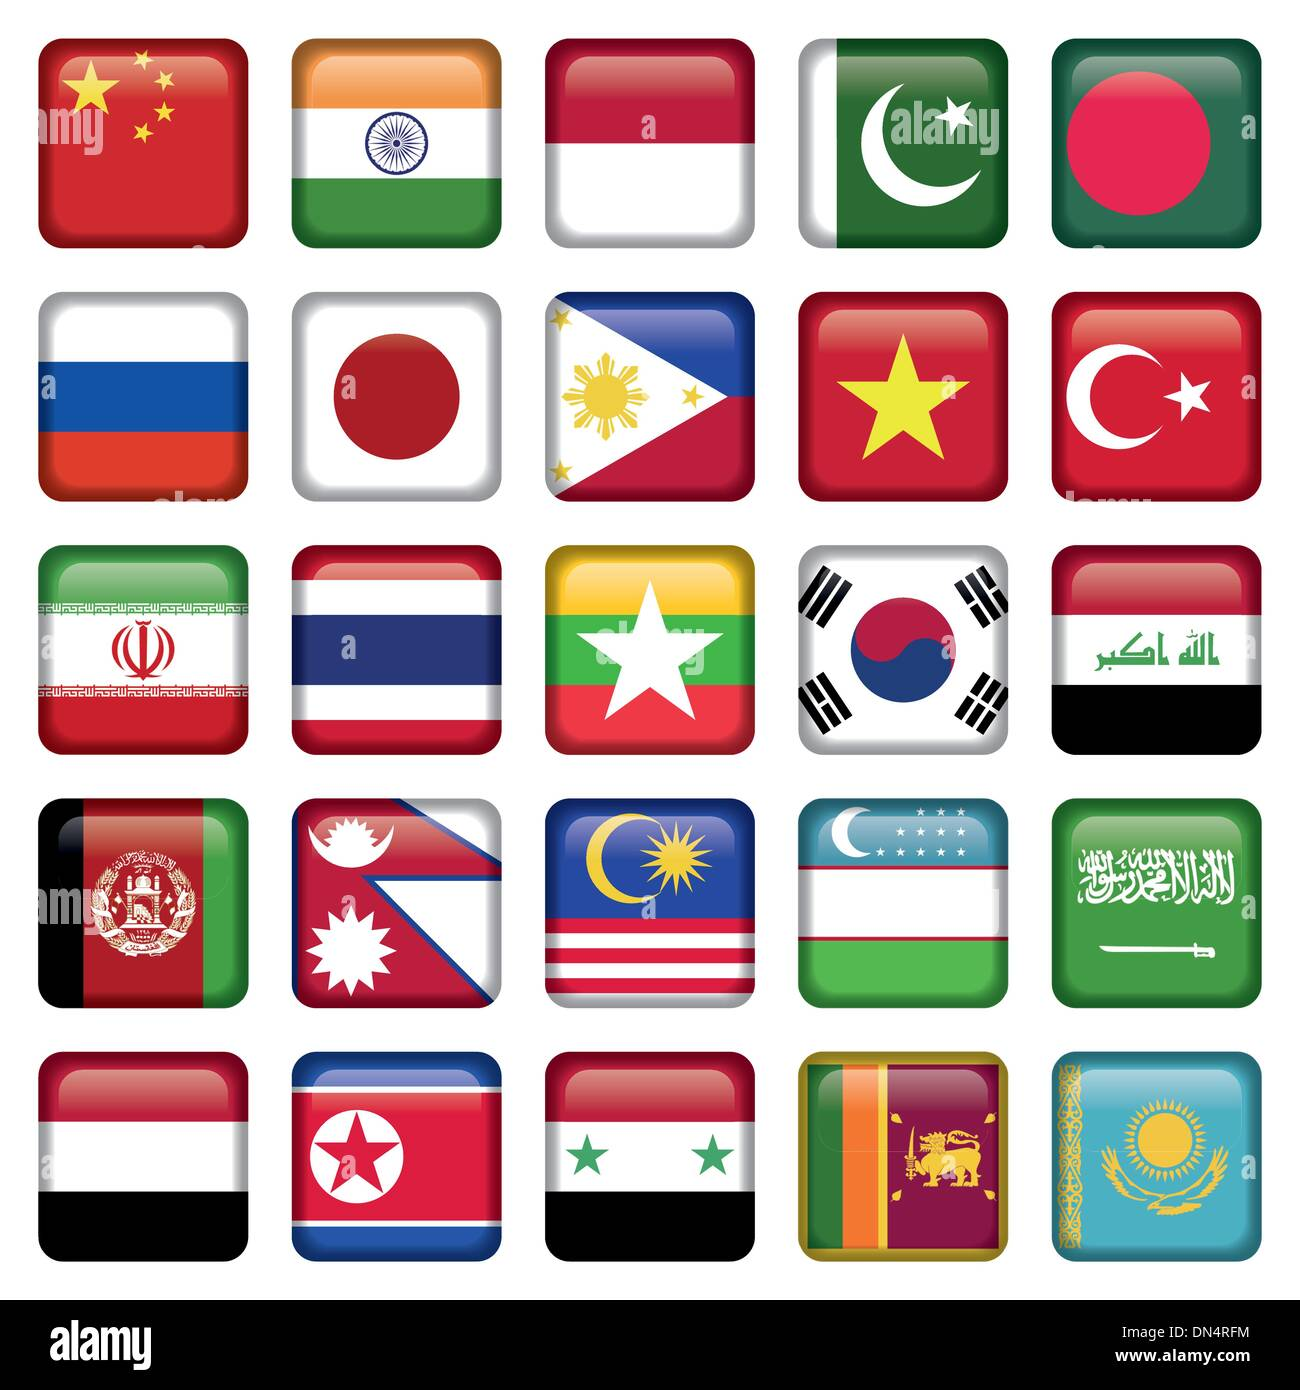 Asia Flags Square Icons - Stock Image